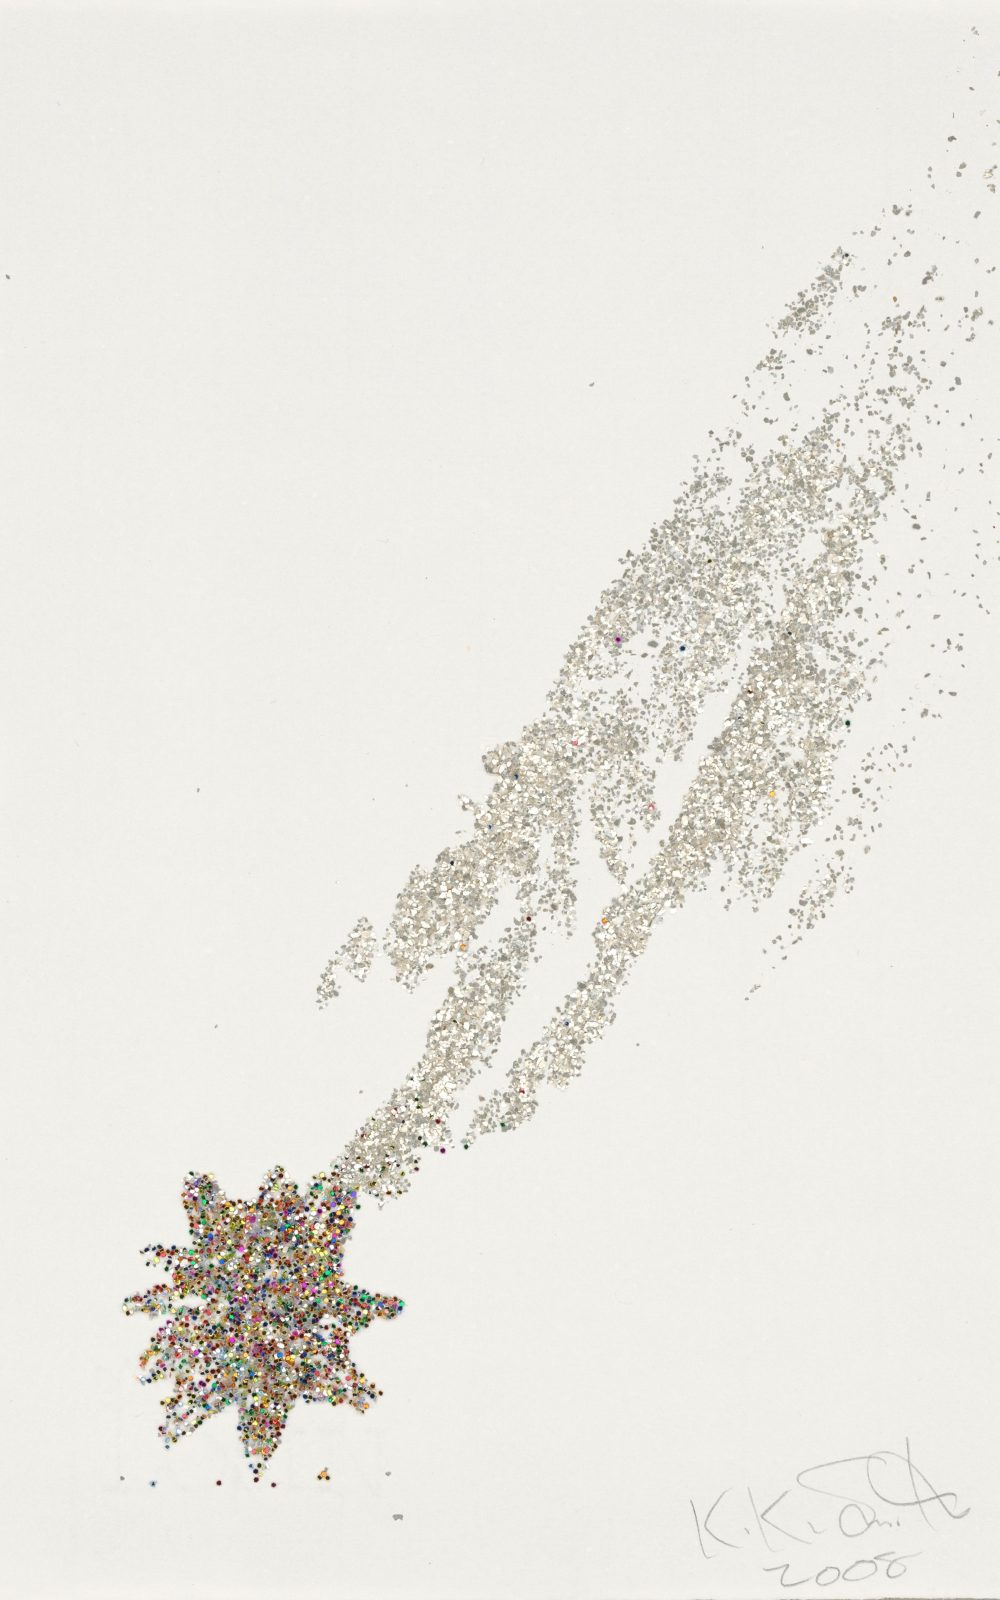 Kiki Smith, Shooting Star, 2008, Monoprint; Tinte und Glitter auf Losin Prague-Papier, 295 x 206 mm, Staatliche Graphische Sammlung München, Schenkung der Künstlerin © Kiki Smith, courtesy Pace Gallery